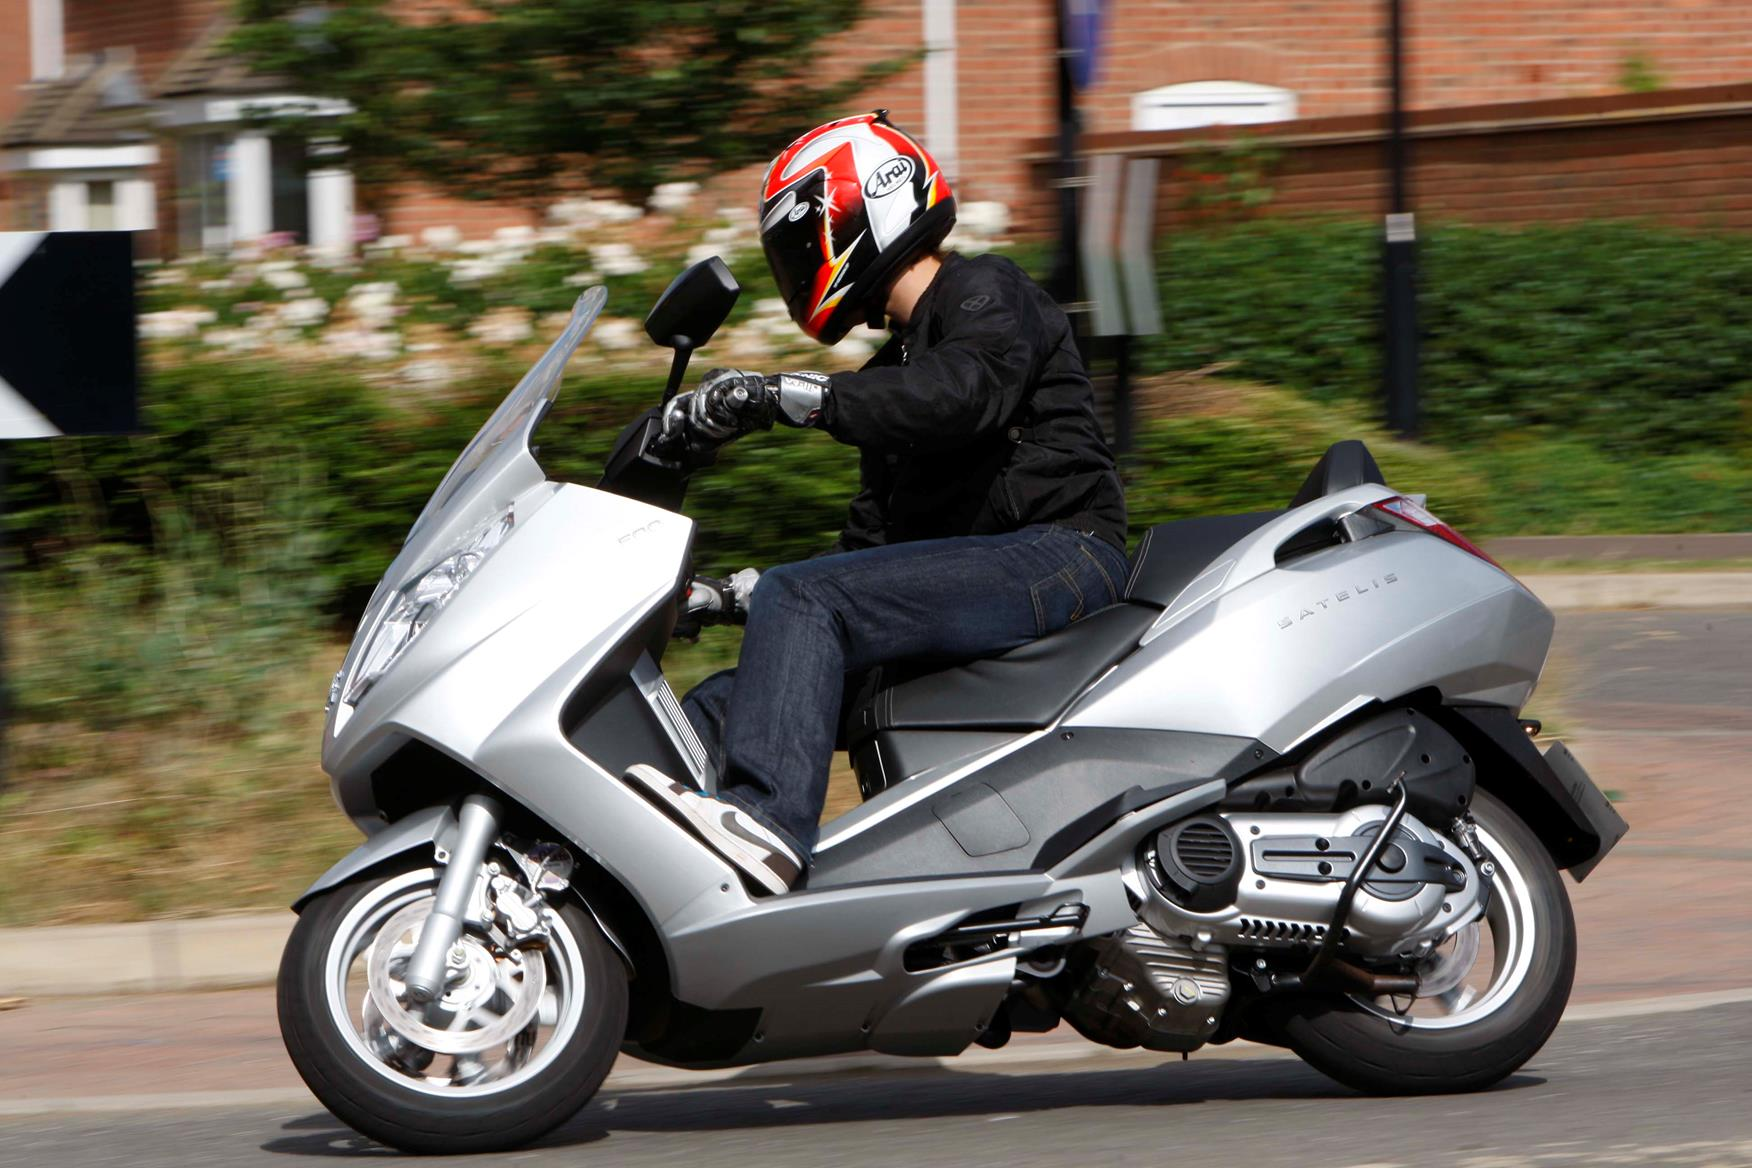 Contact moreover Heres Why The Tvs Apache 200 Can Be A Real Winner moreover Uk furthermore Fj 1200 Itx furthermore Yamaha T Max 500 2004 Pic 55095. on yamaha 750 motorcycle